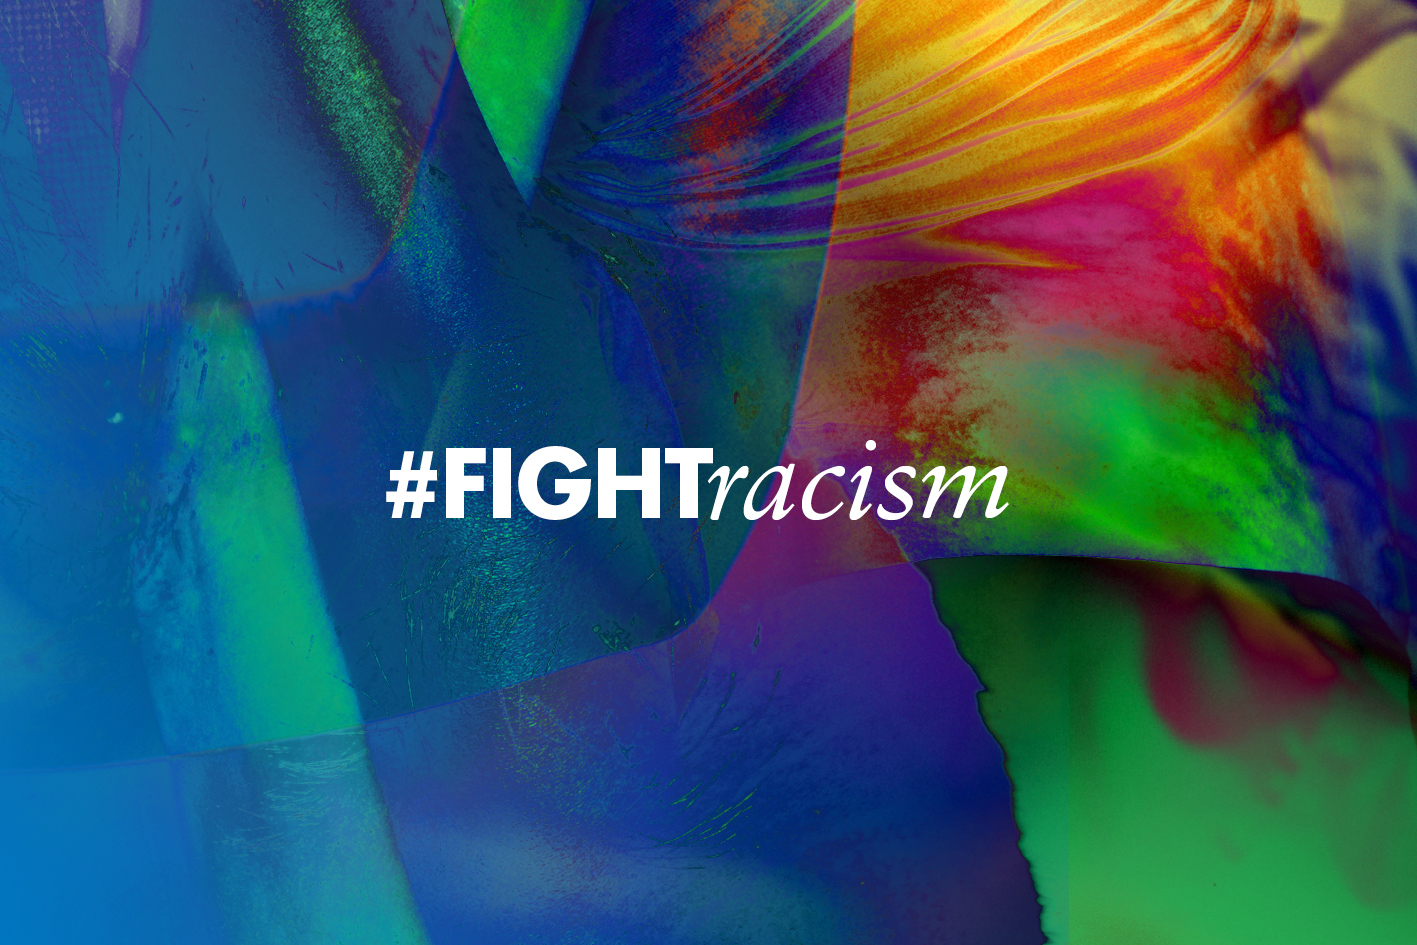 hashtag #fightracism